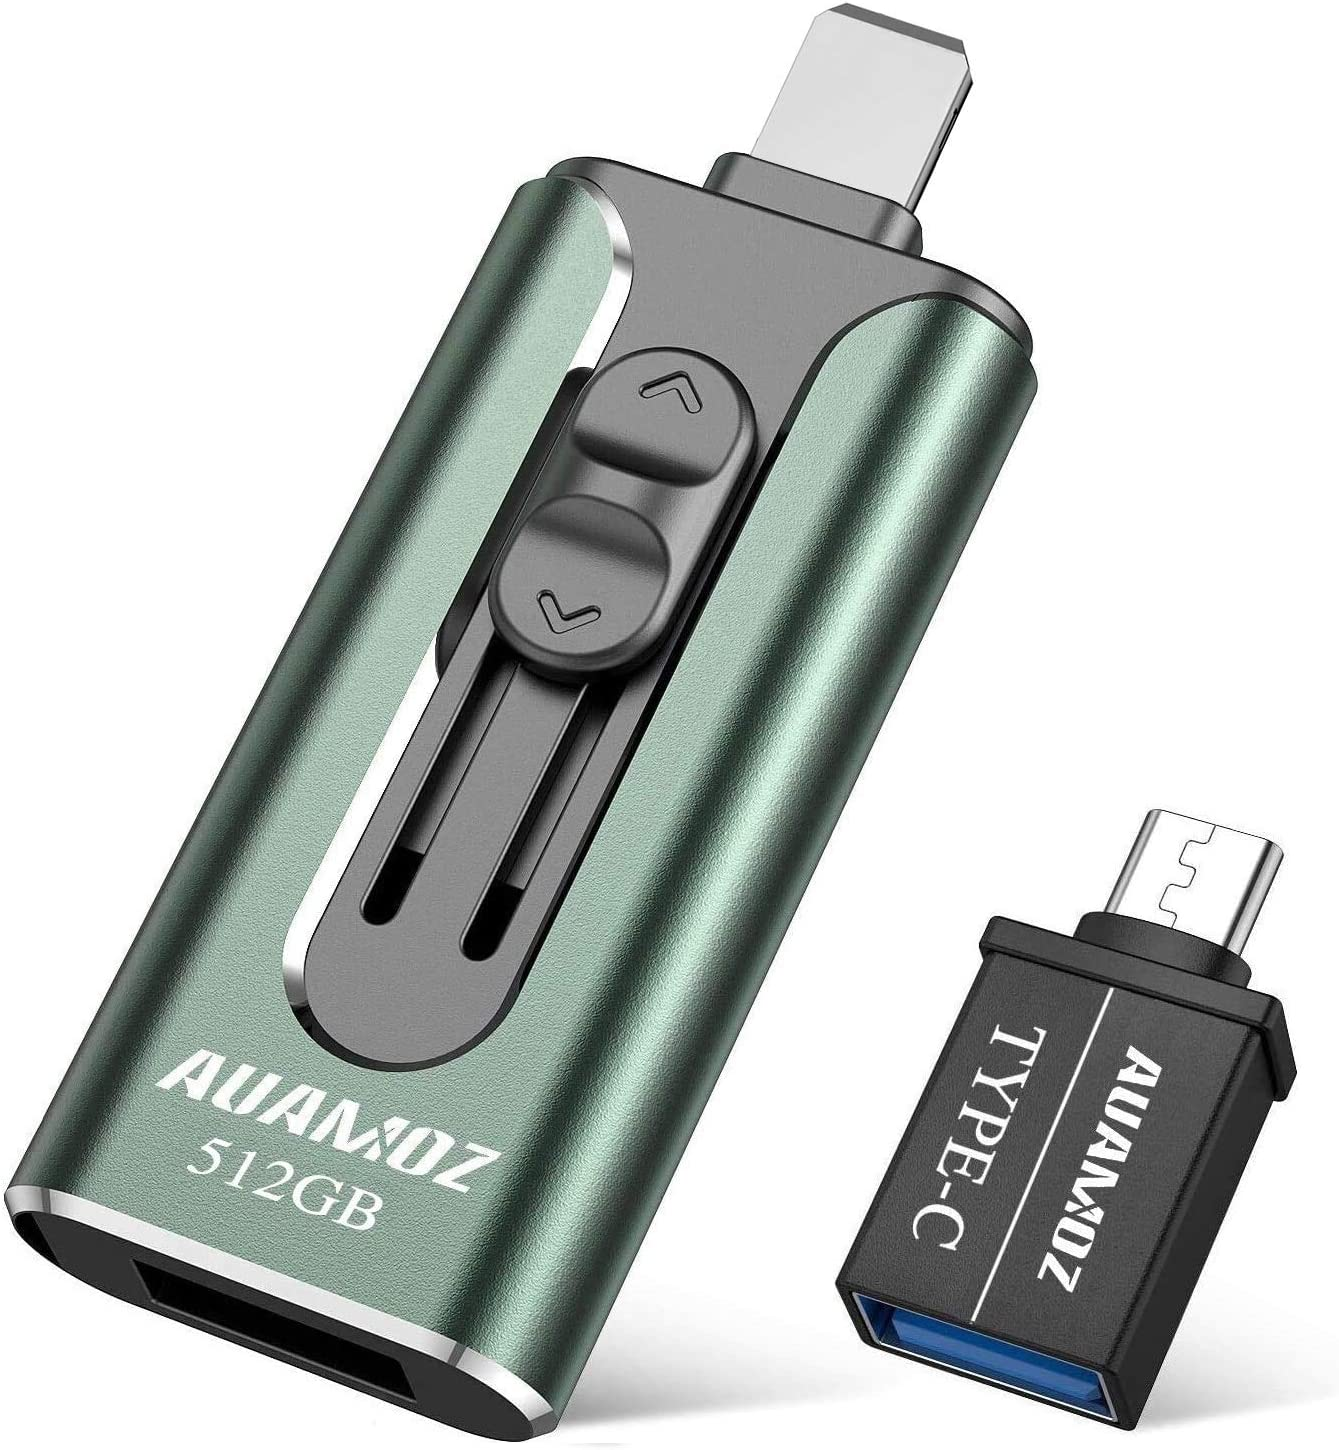 USB3.0 Flash Drives 512GB, AUAMOZ Memory Drive 512GB Photo Stick Compatible with Mobile Phone & Computers, Mobile Phone External Expandable Memory Storage Drive, Take More Photos & Videos (Dark Green)